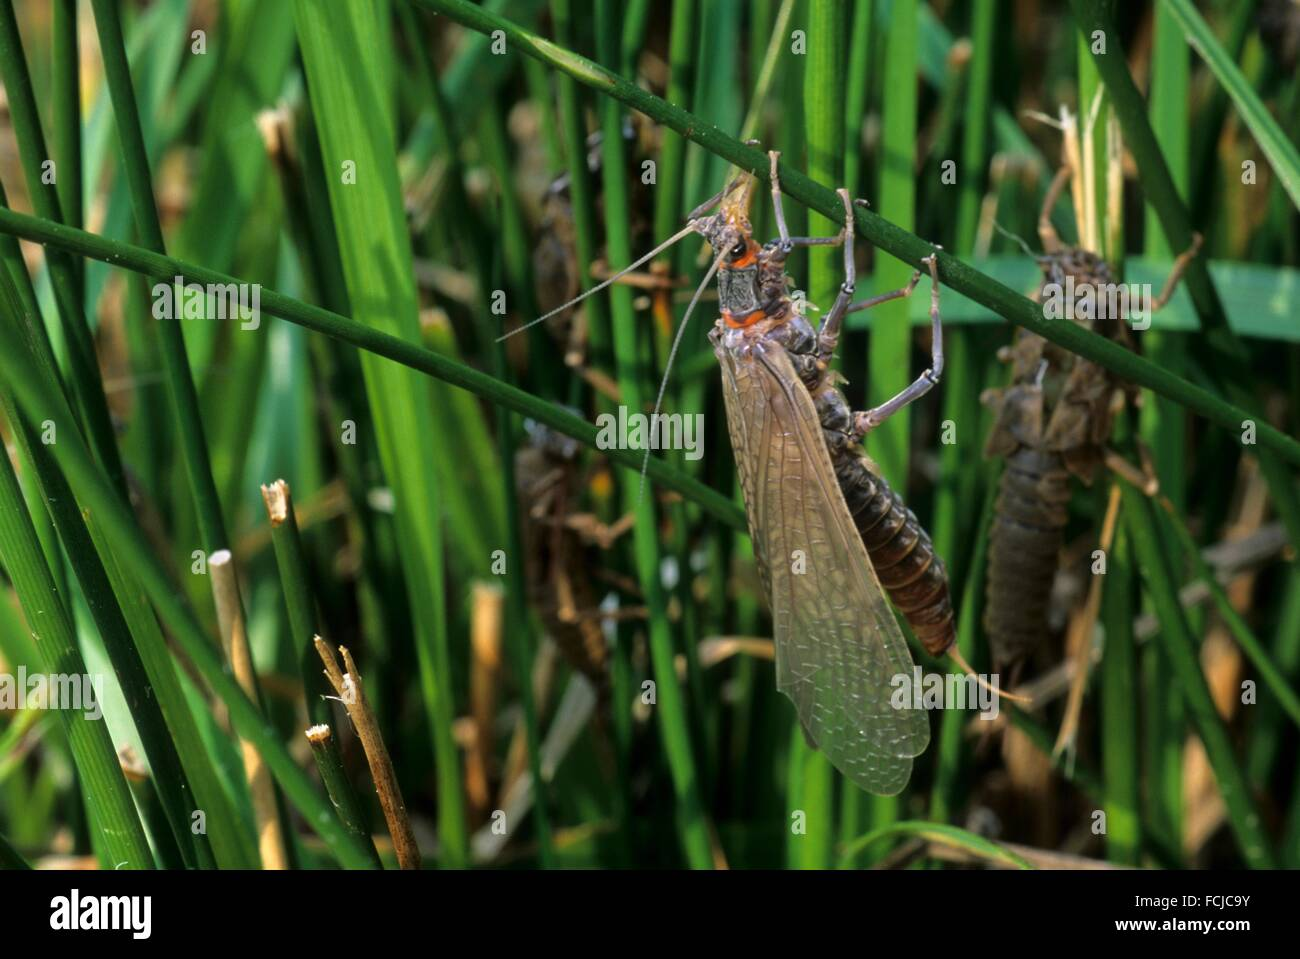 Salmonfly hatching, Casey State Park, Rogue-Umpqua National Scenic Byway, Oregon. - Stock Image